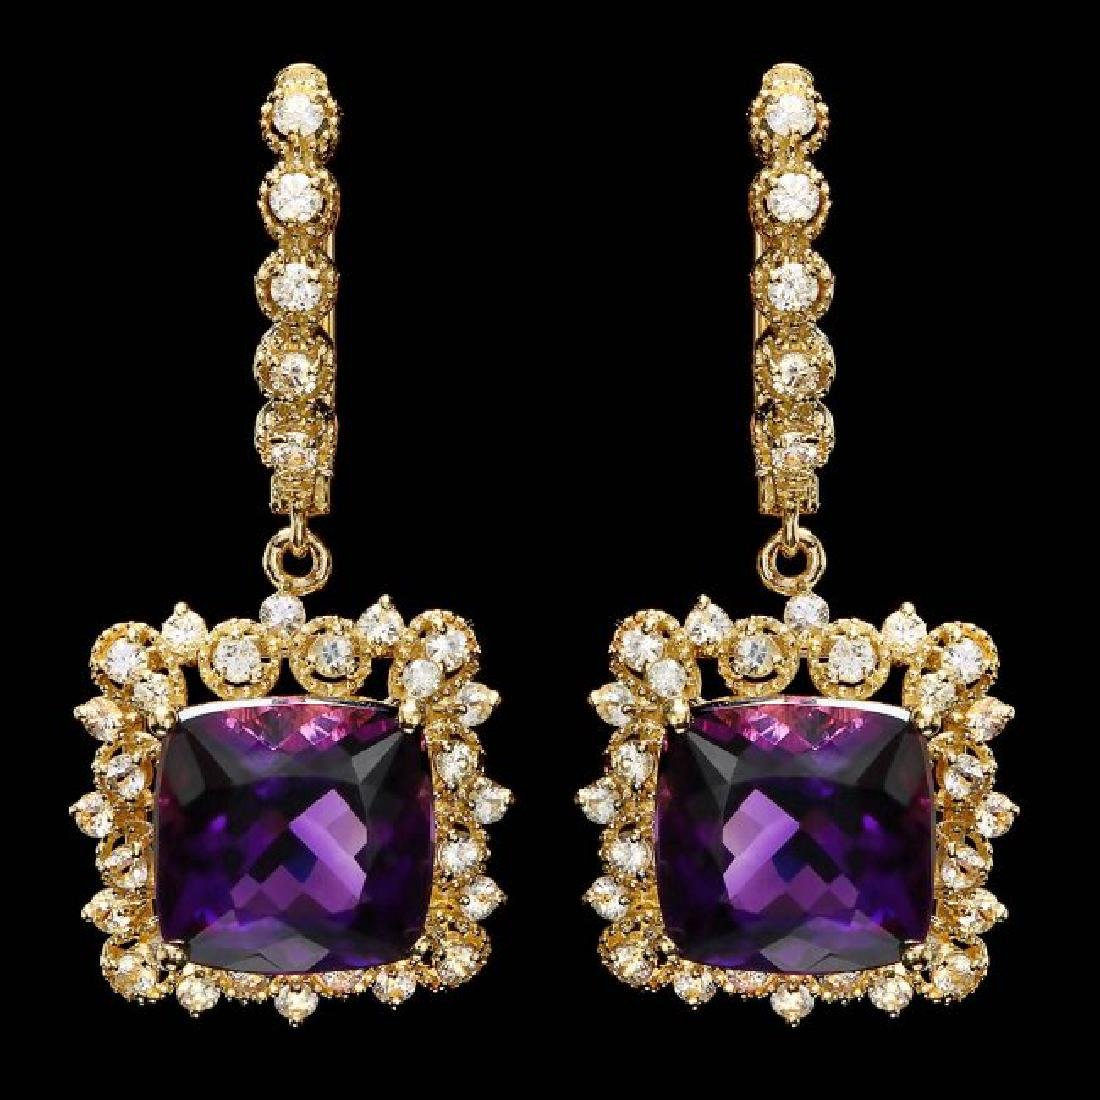 14k Gold 11.50ct Amethyst 1.70ct Diamond Earrings